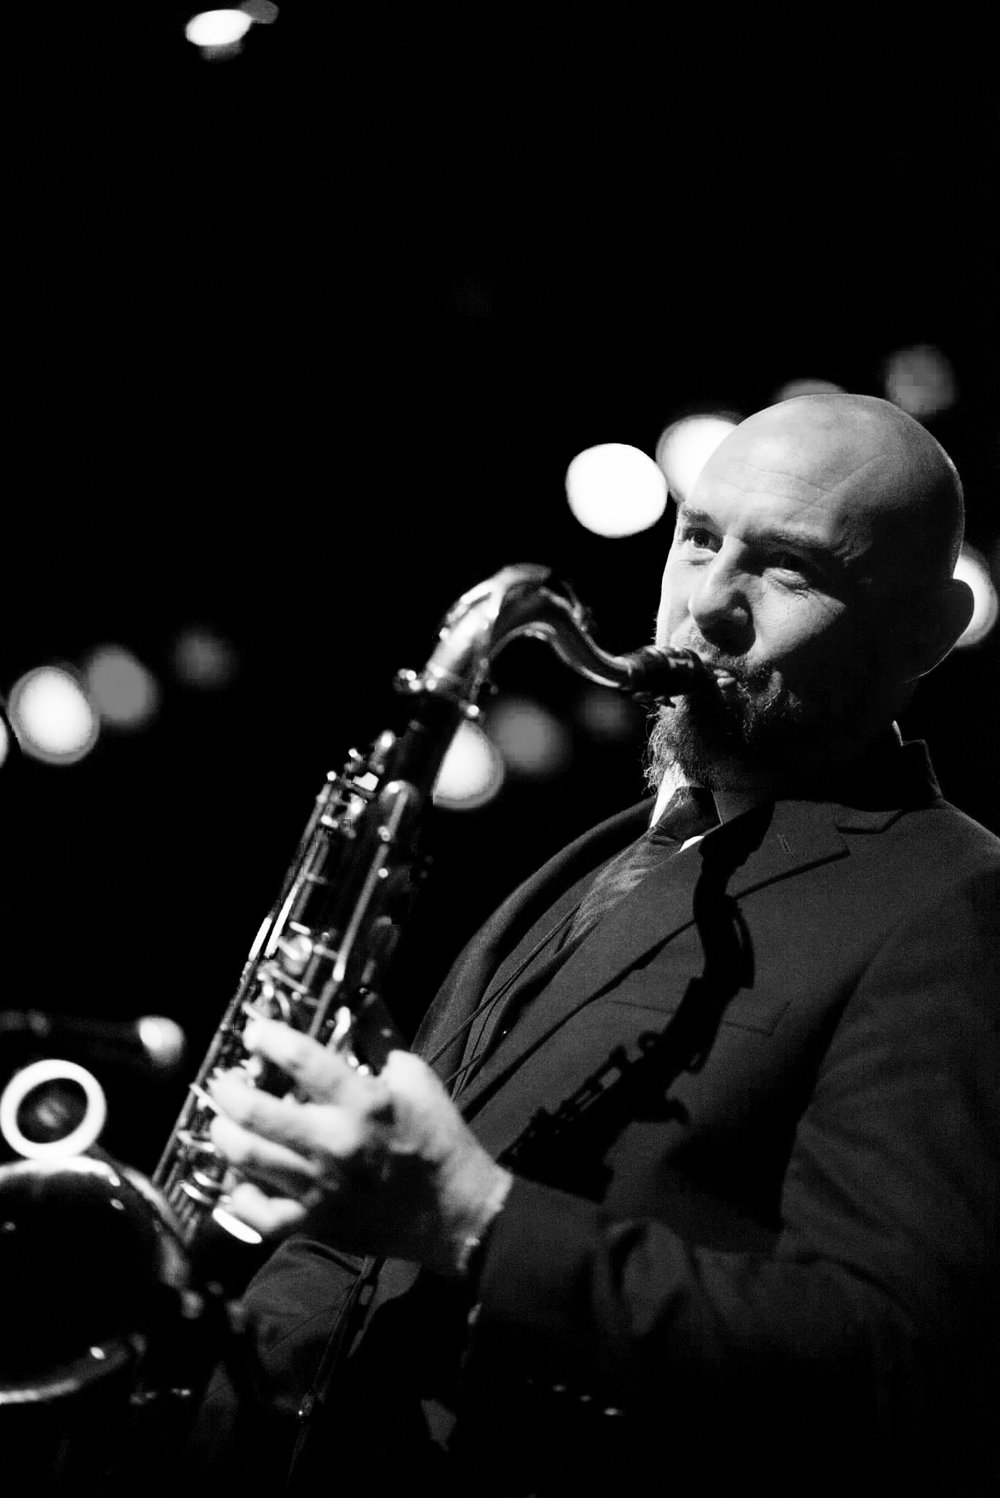 Andy Warr is a saxophonist, producer, and composer